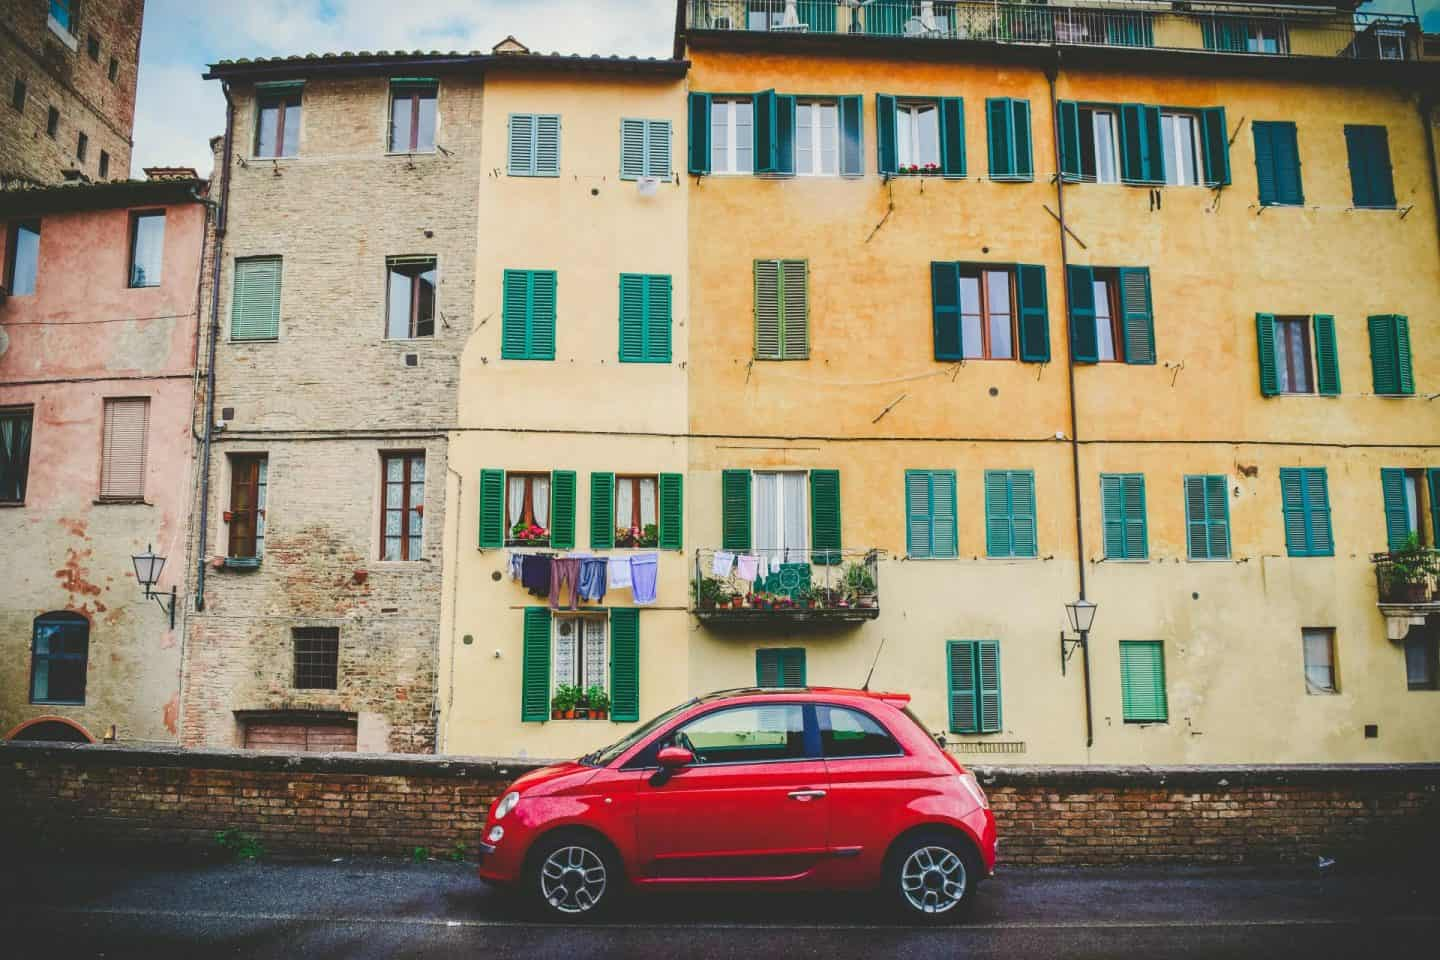 Hiring a writer car in italy tips